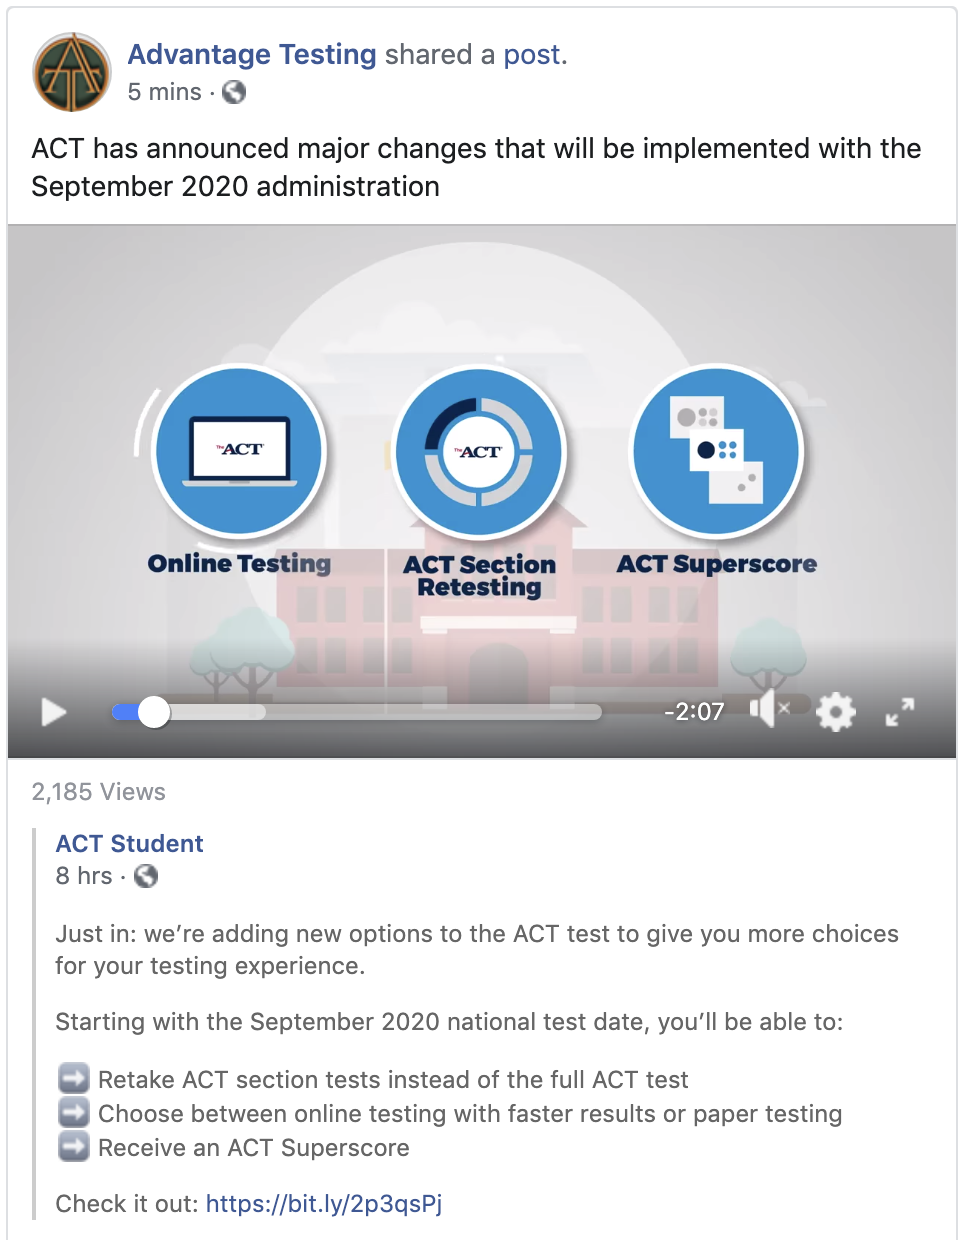 ACT has announced major changes that will be implemented with the September 2020 administration